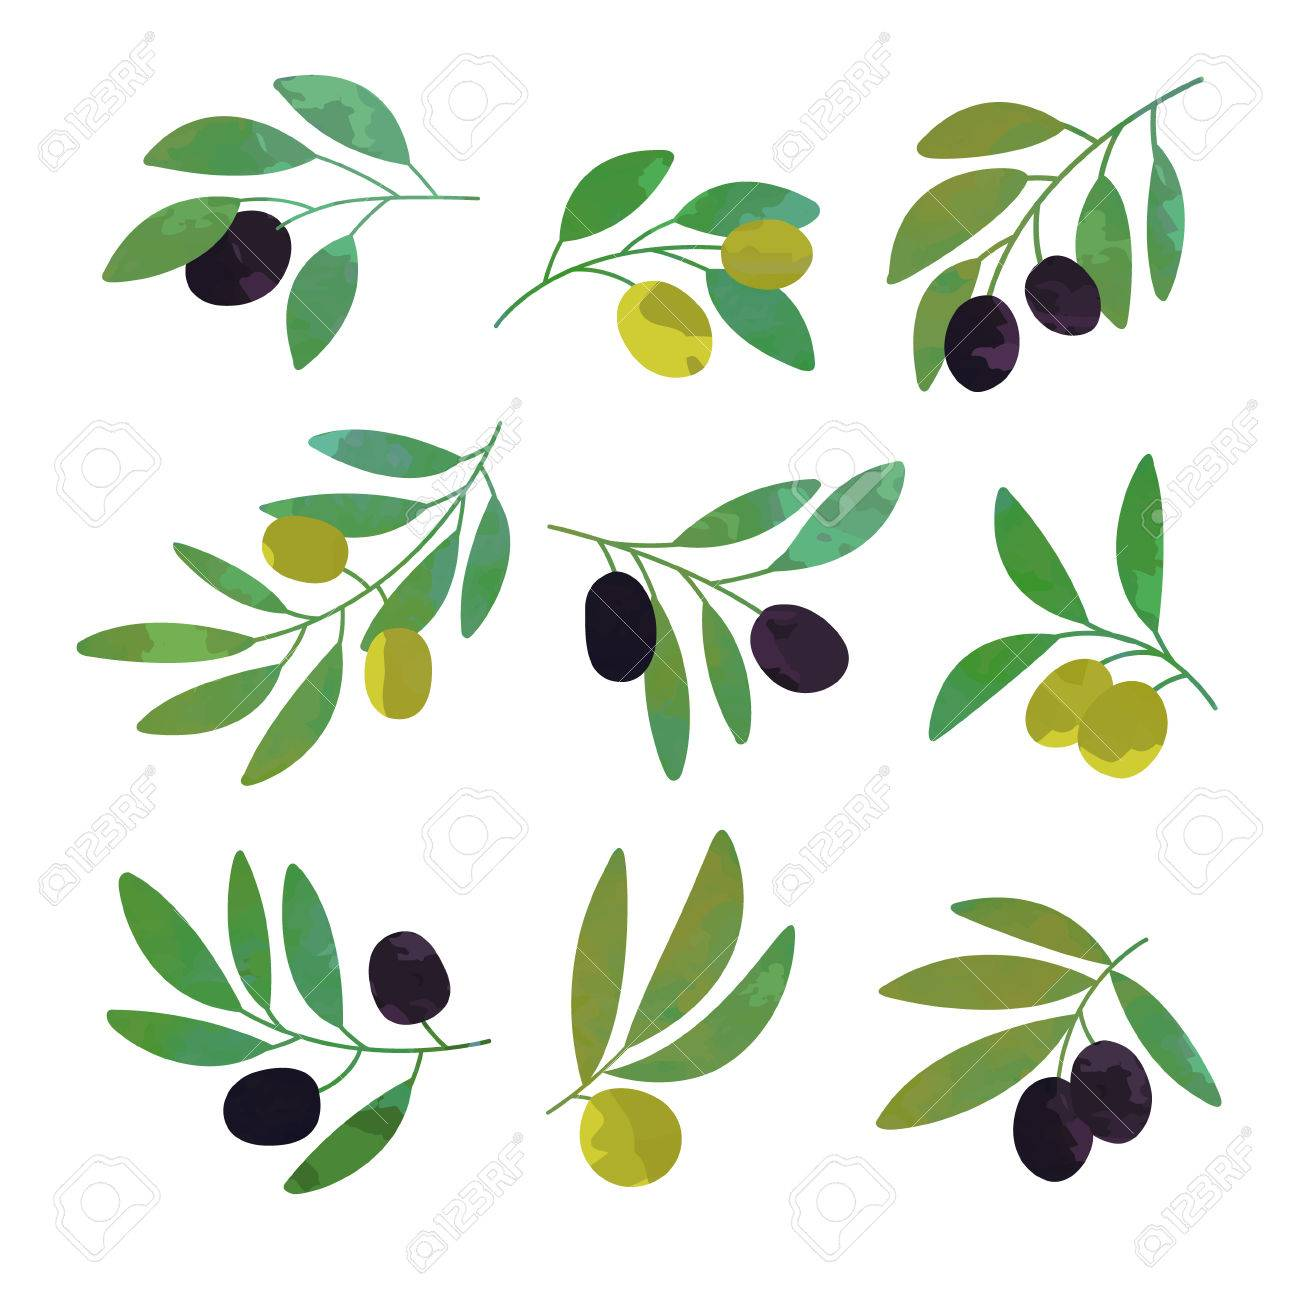 Olive Tree Branches Set Of Colorful Vector Illustrations Royalty